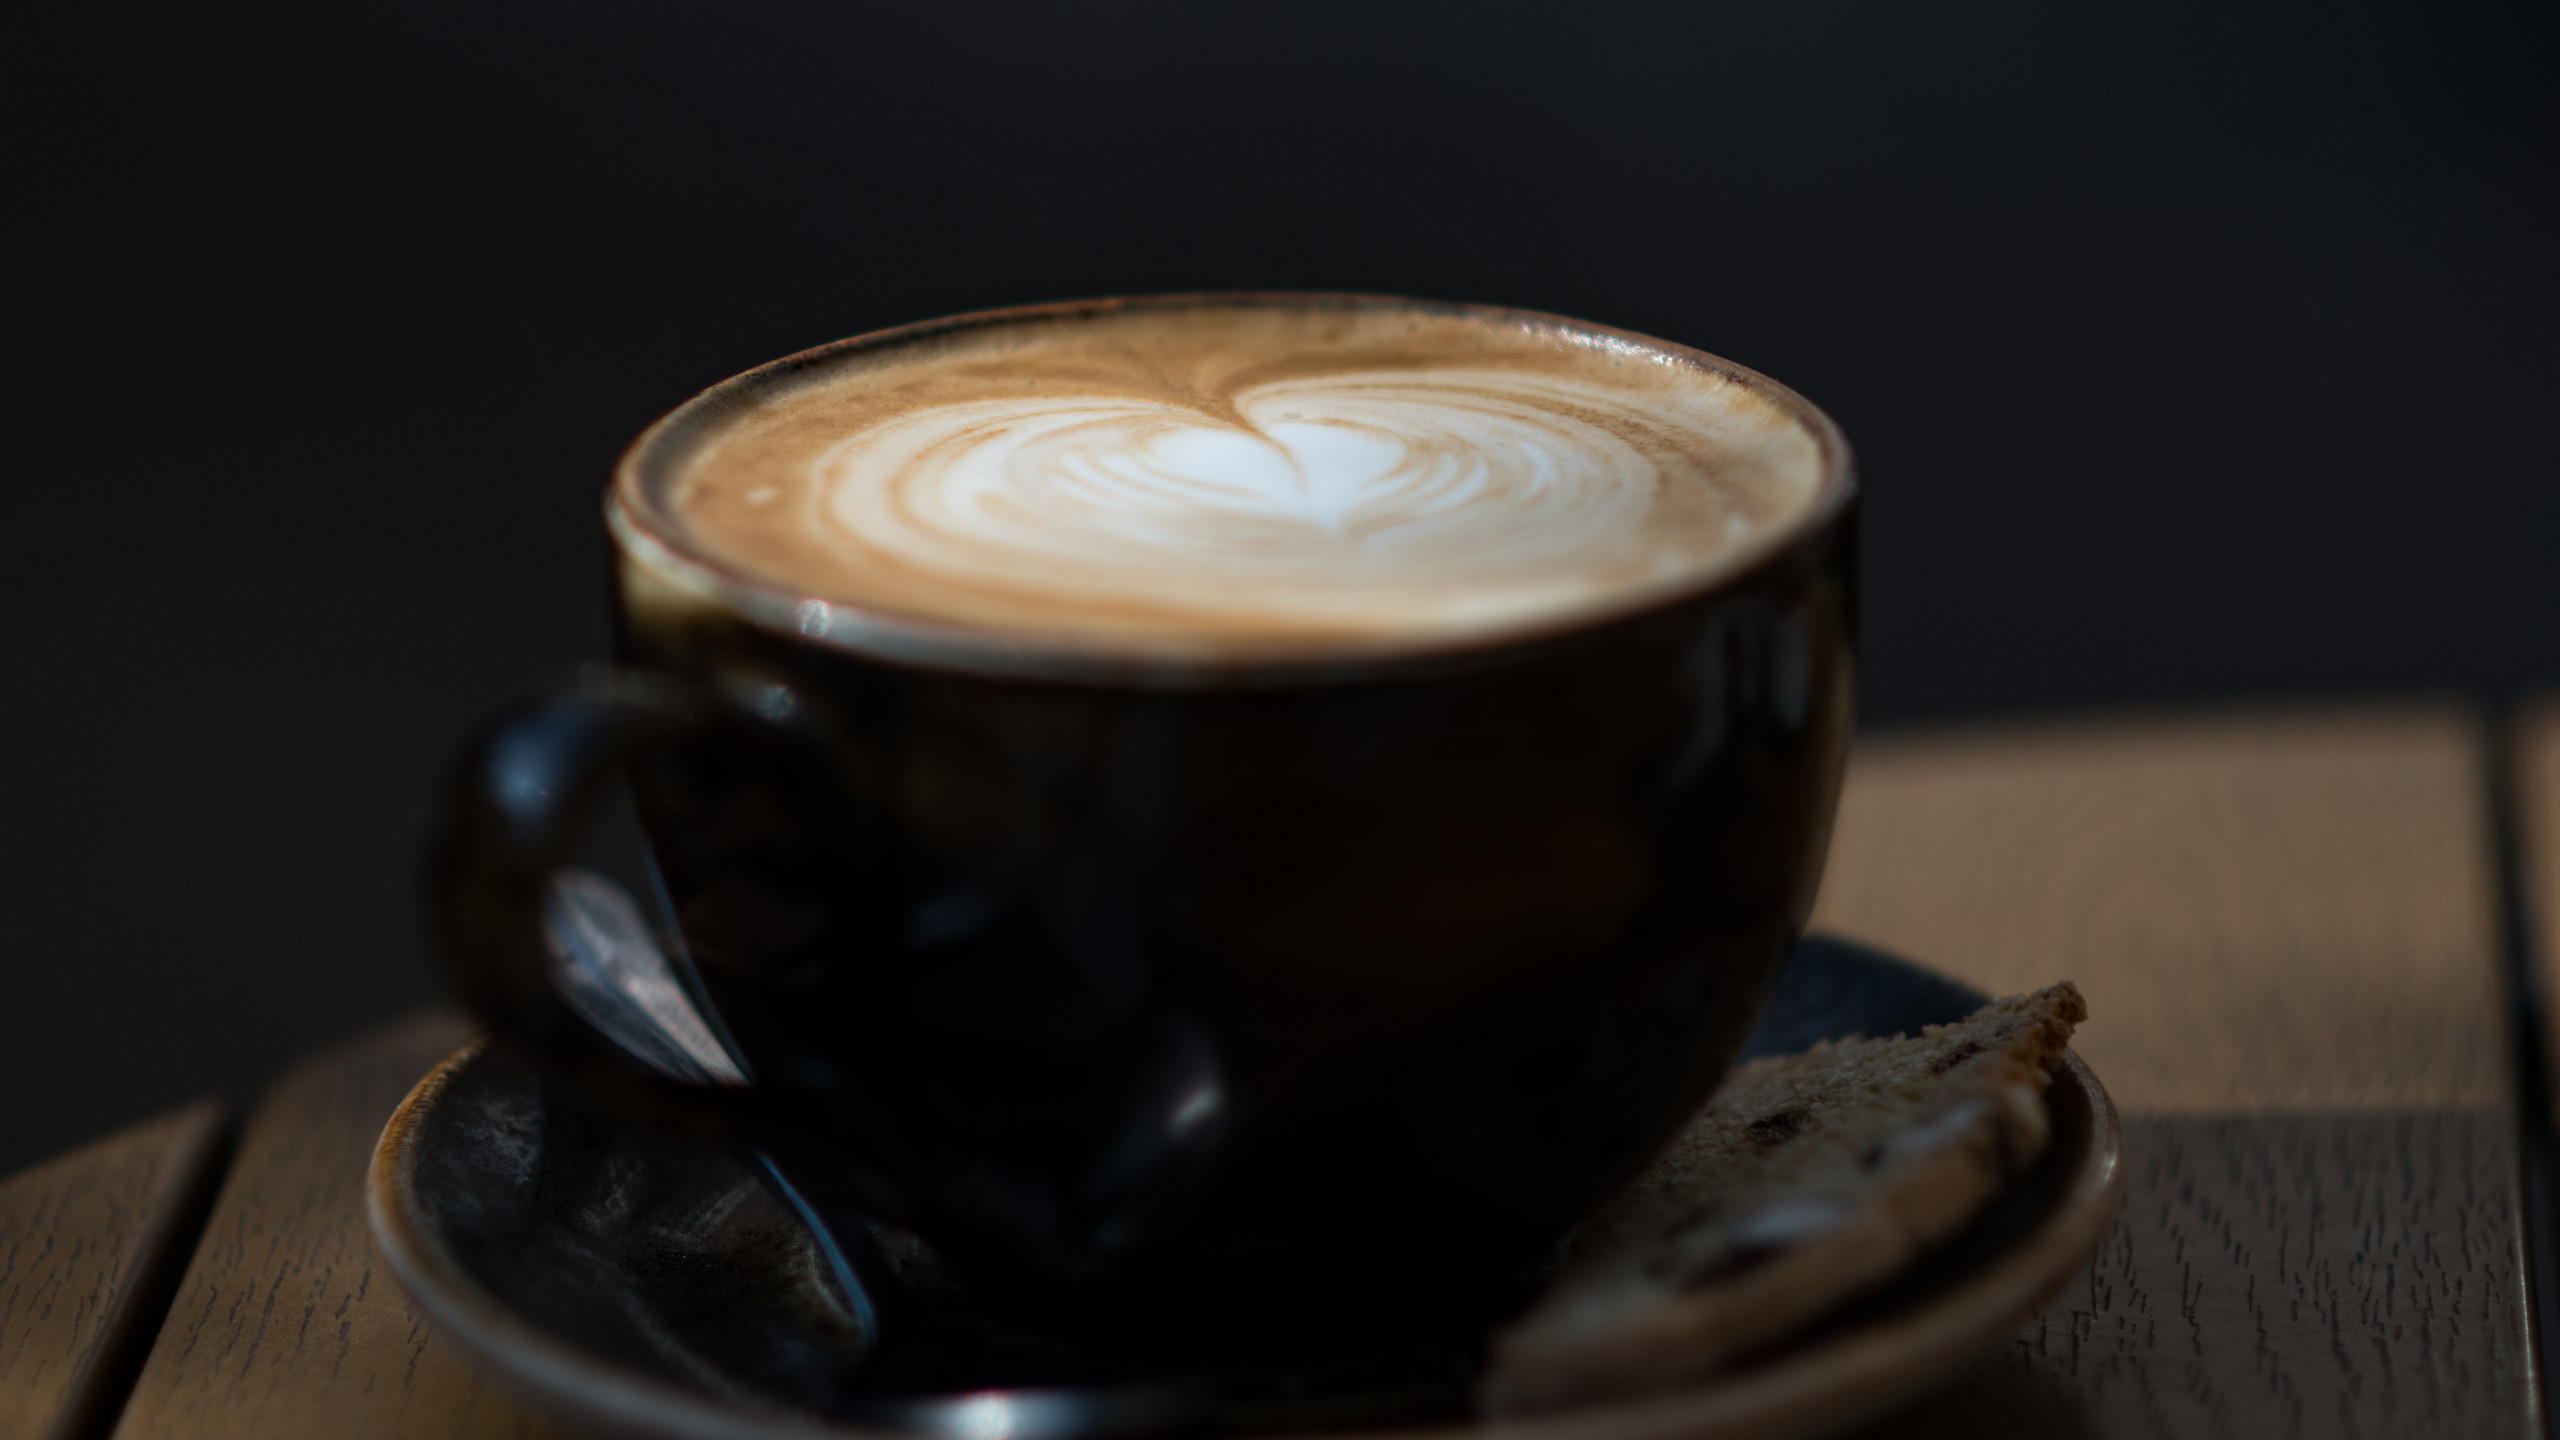 Good coffee isn't just for Italy!